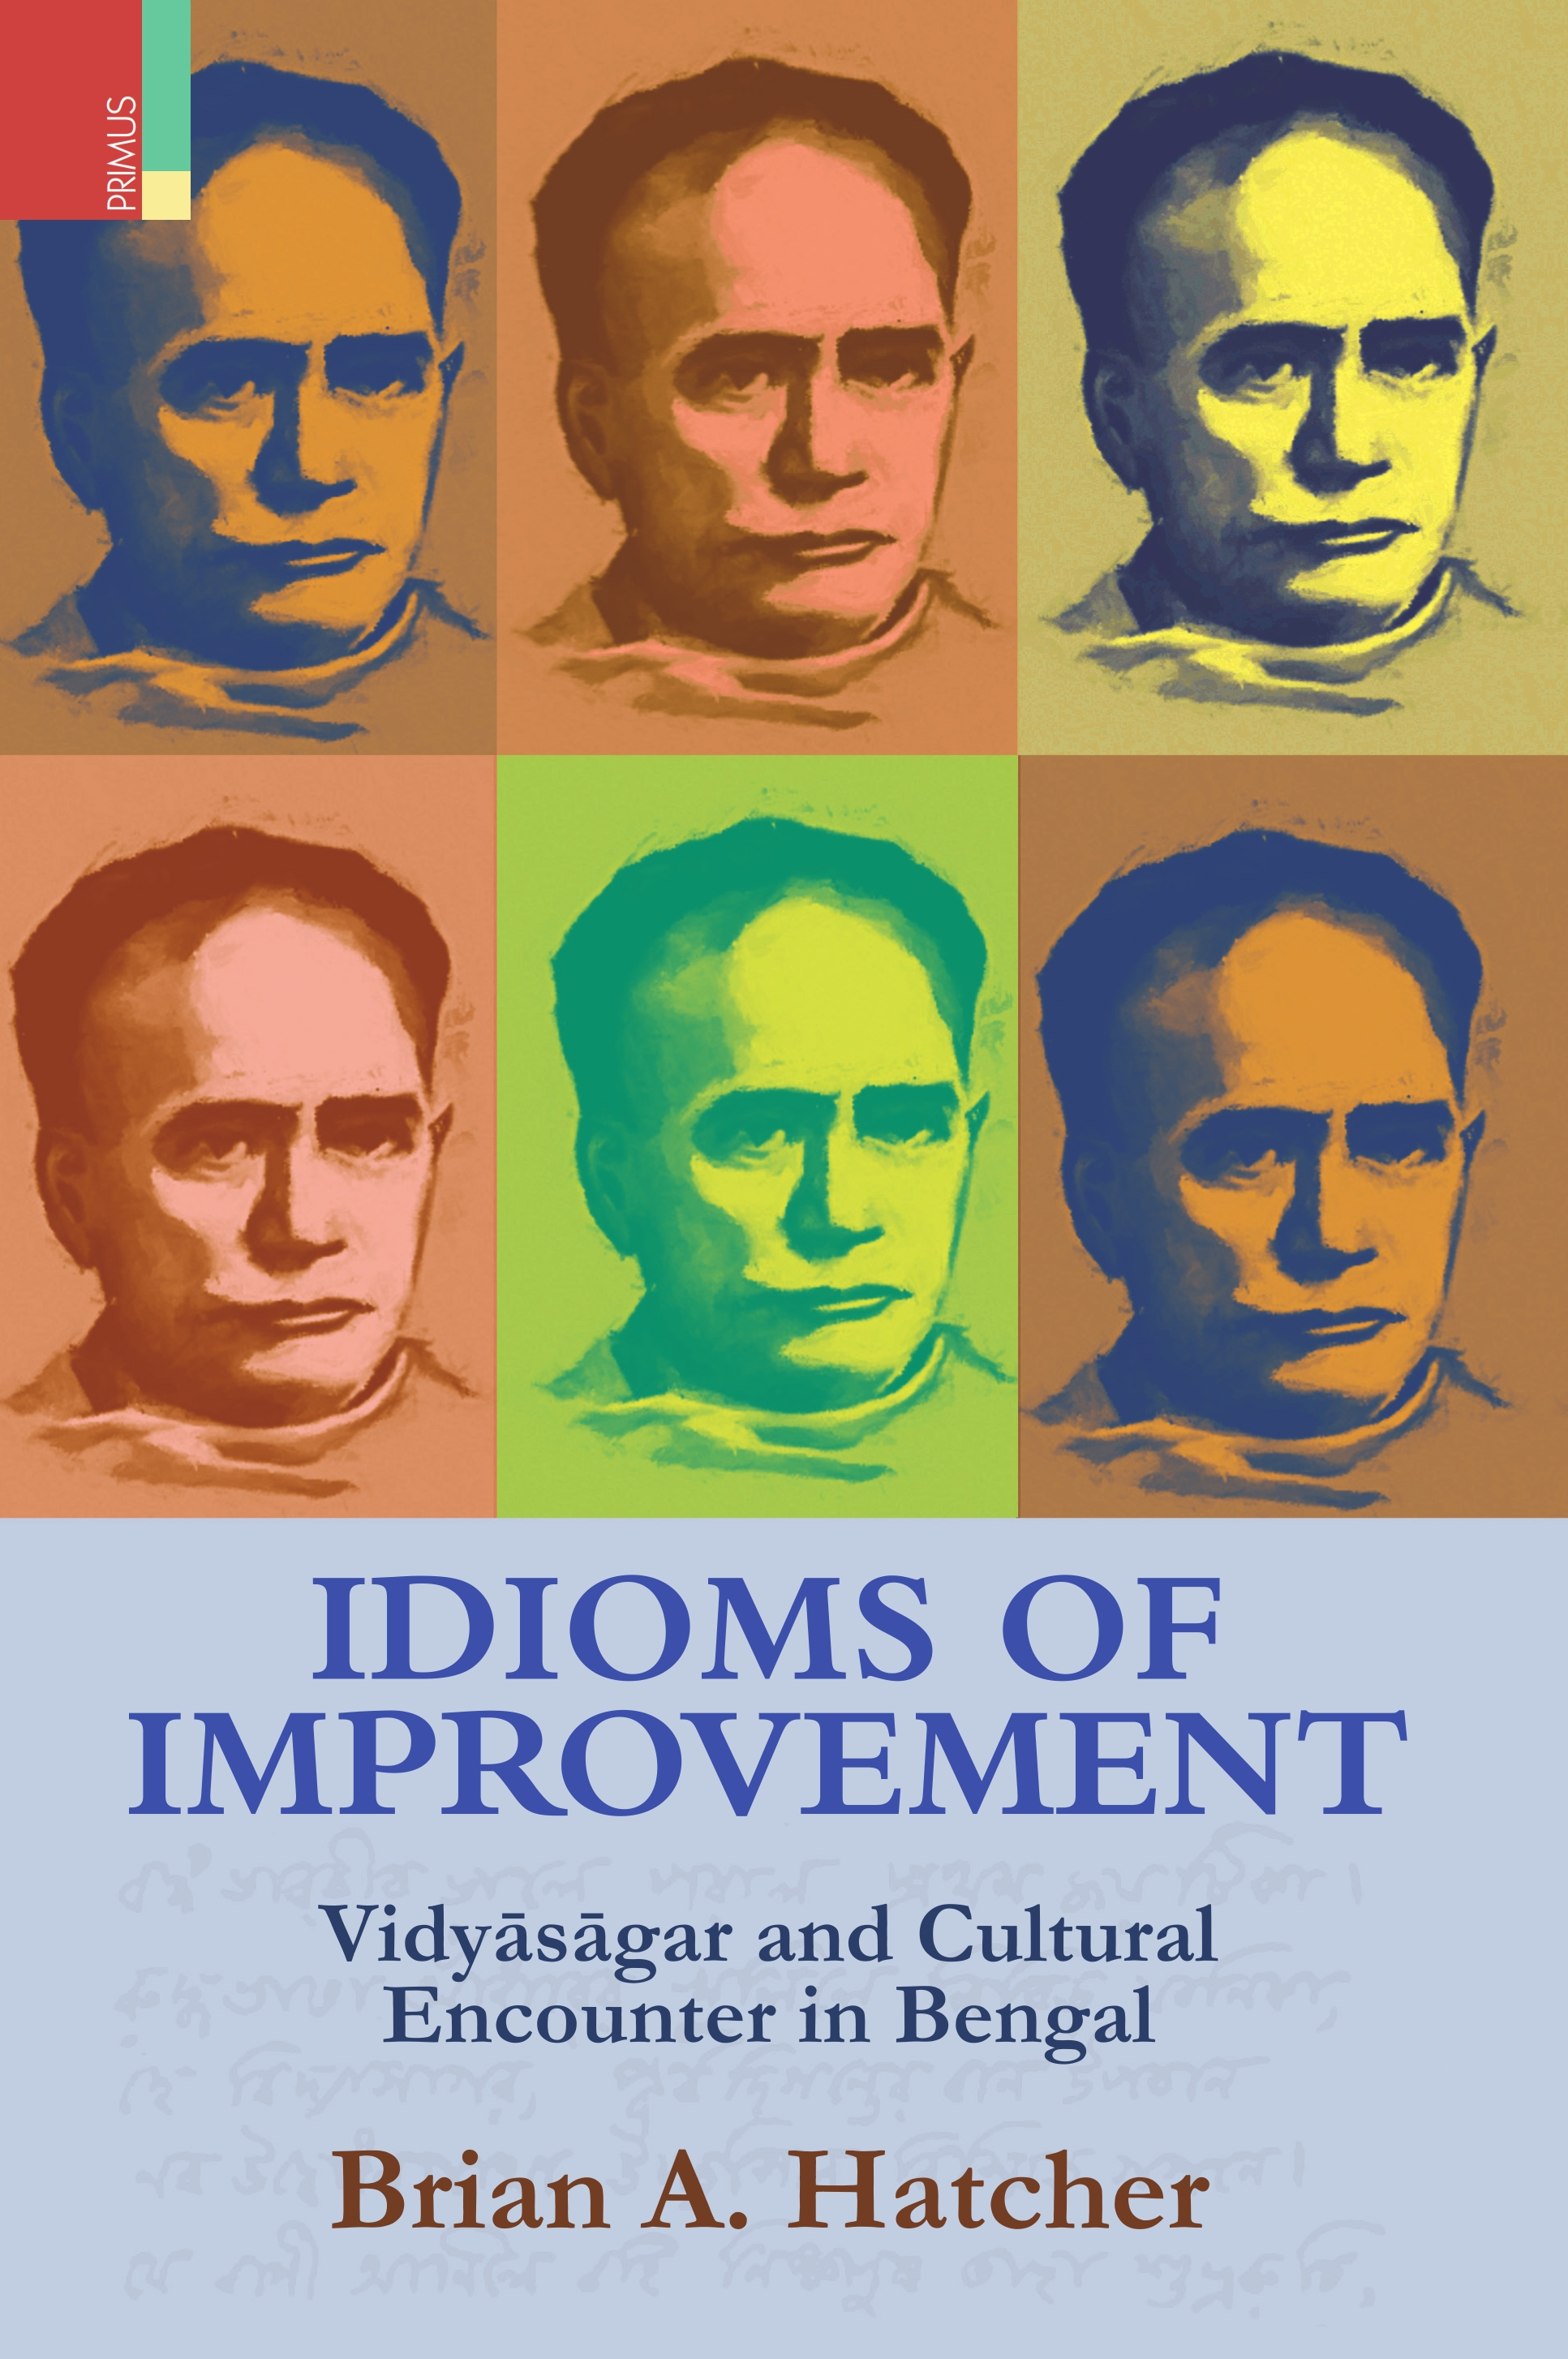 Idioms of Improvement: Vidyasagar and Cultural Encounter in Bengal by Brian Hatcher